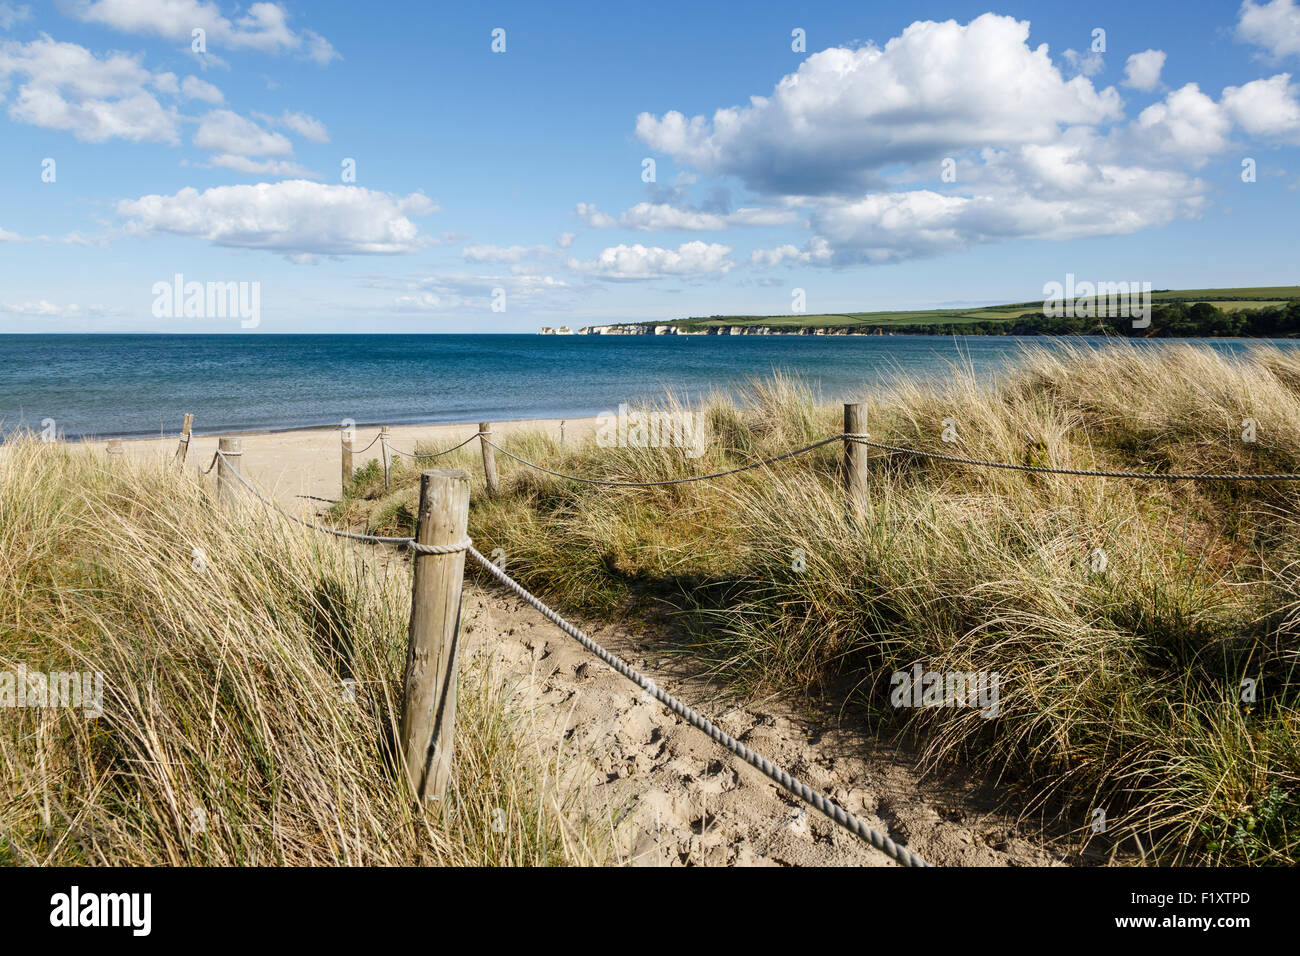 Studland Beach and view towards Old Harry Rocks, Isle of Purbeck, Dorset - Stock Image